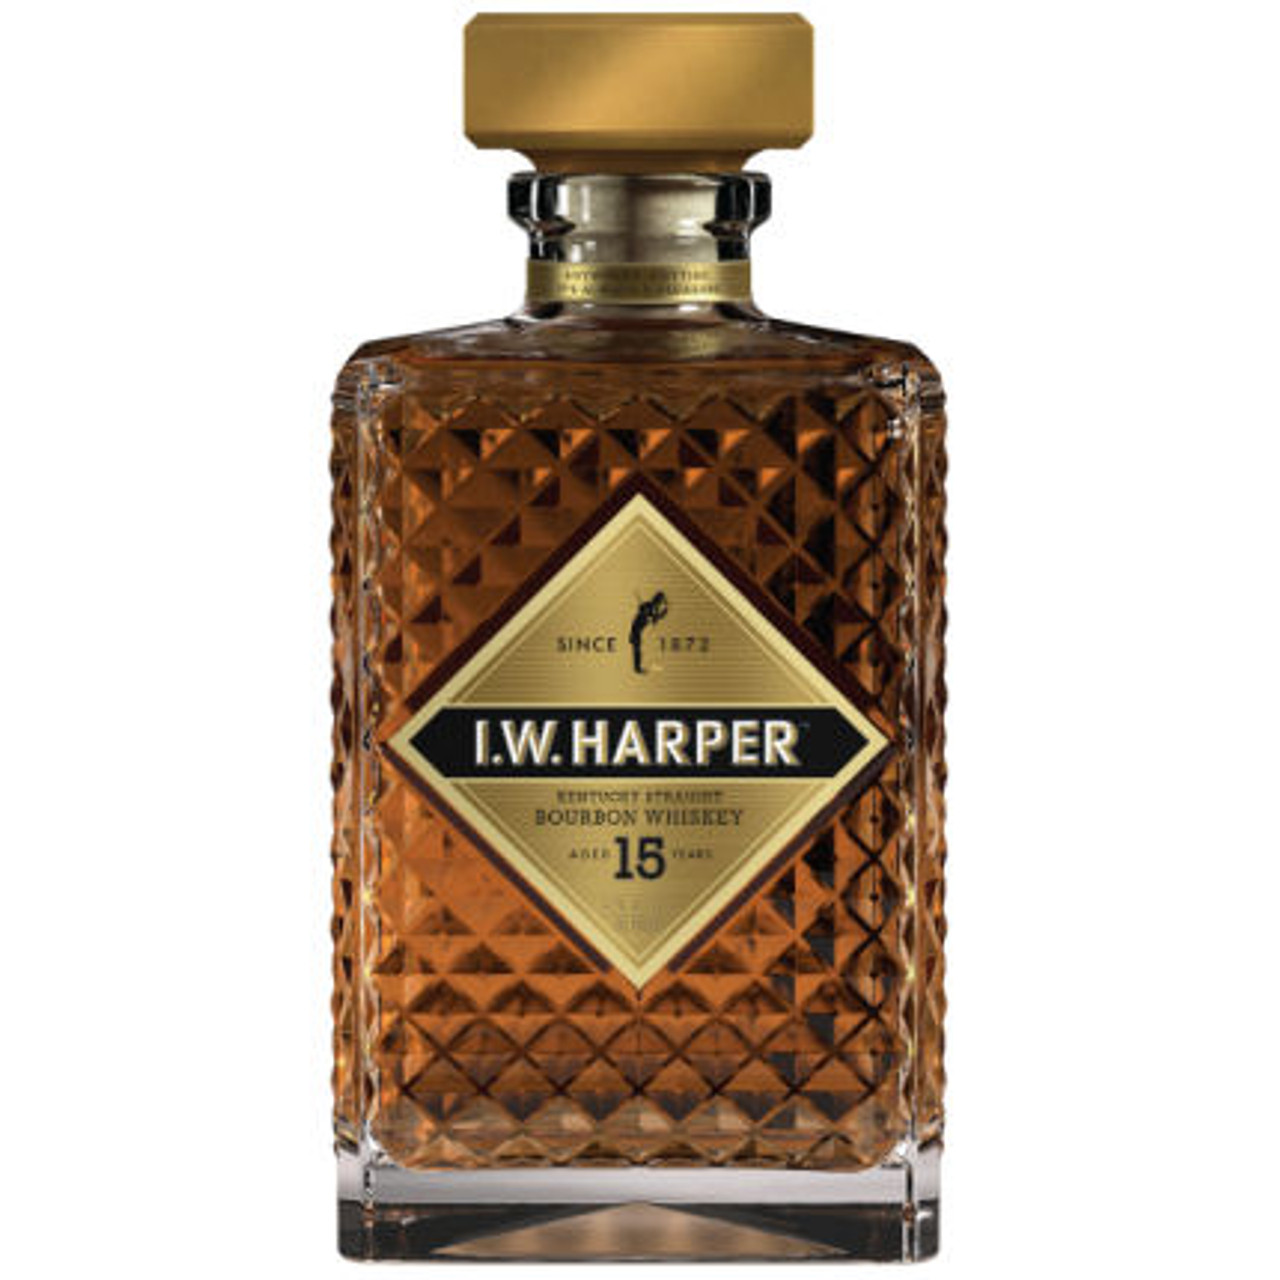 I.W. Harper 15 Year Old Kentucky Straight Bourbon Whiskey 750ml